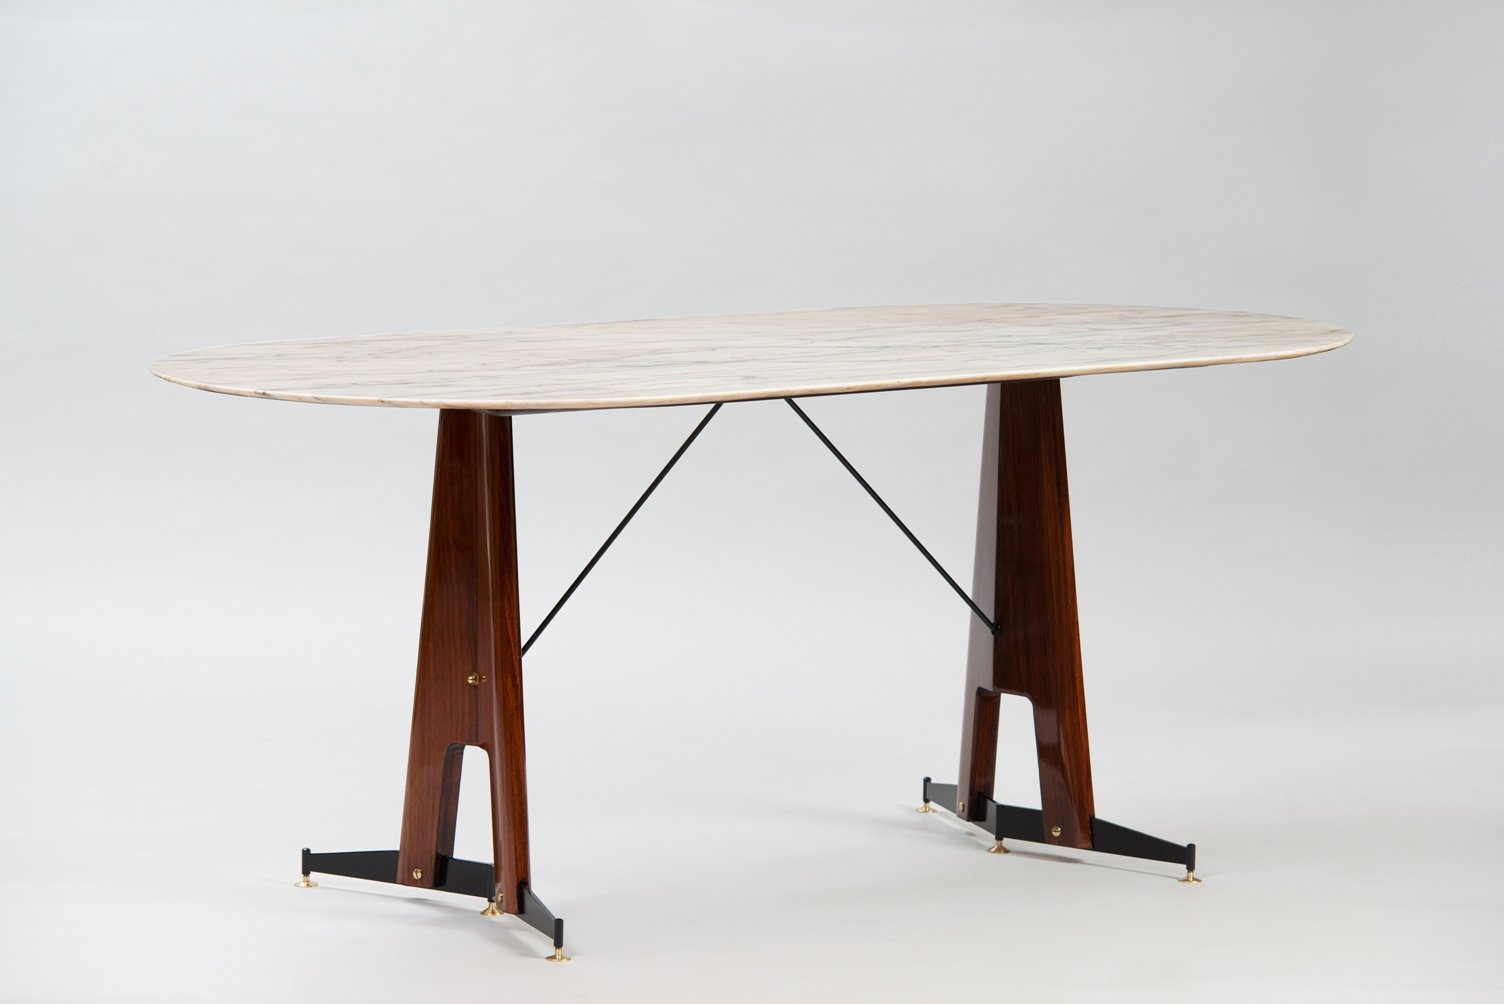 Best table salle a manger marbre design ideas lalawgroup for Luminaire table salle a manger